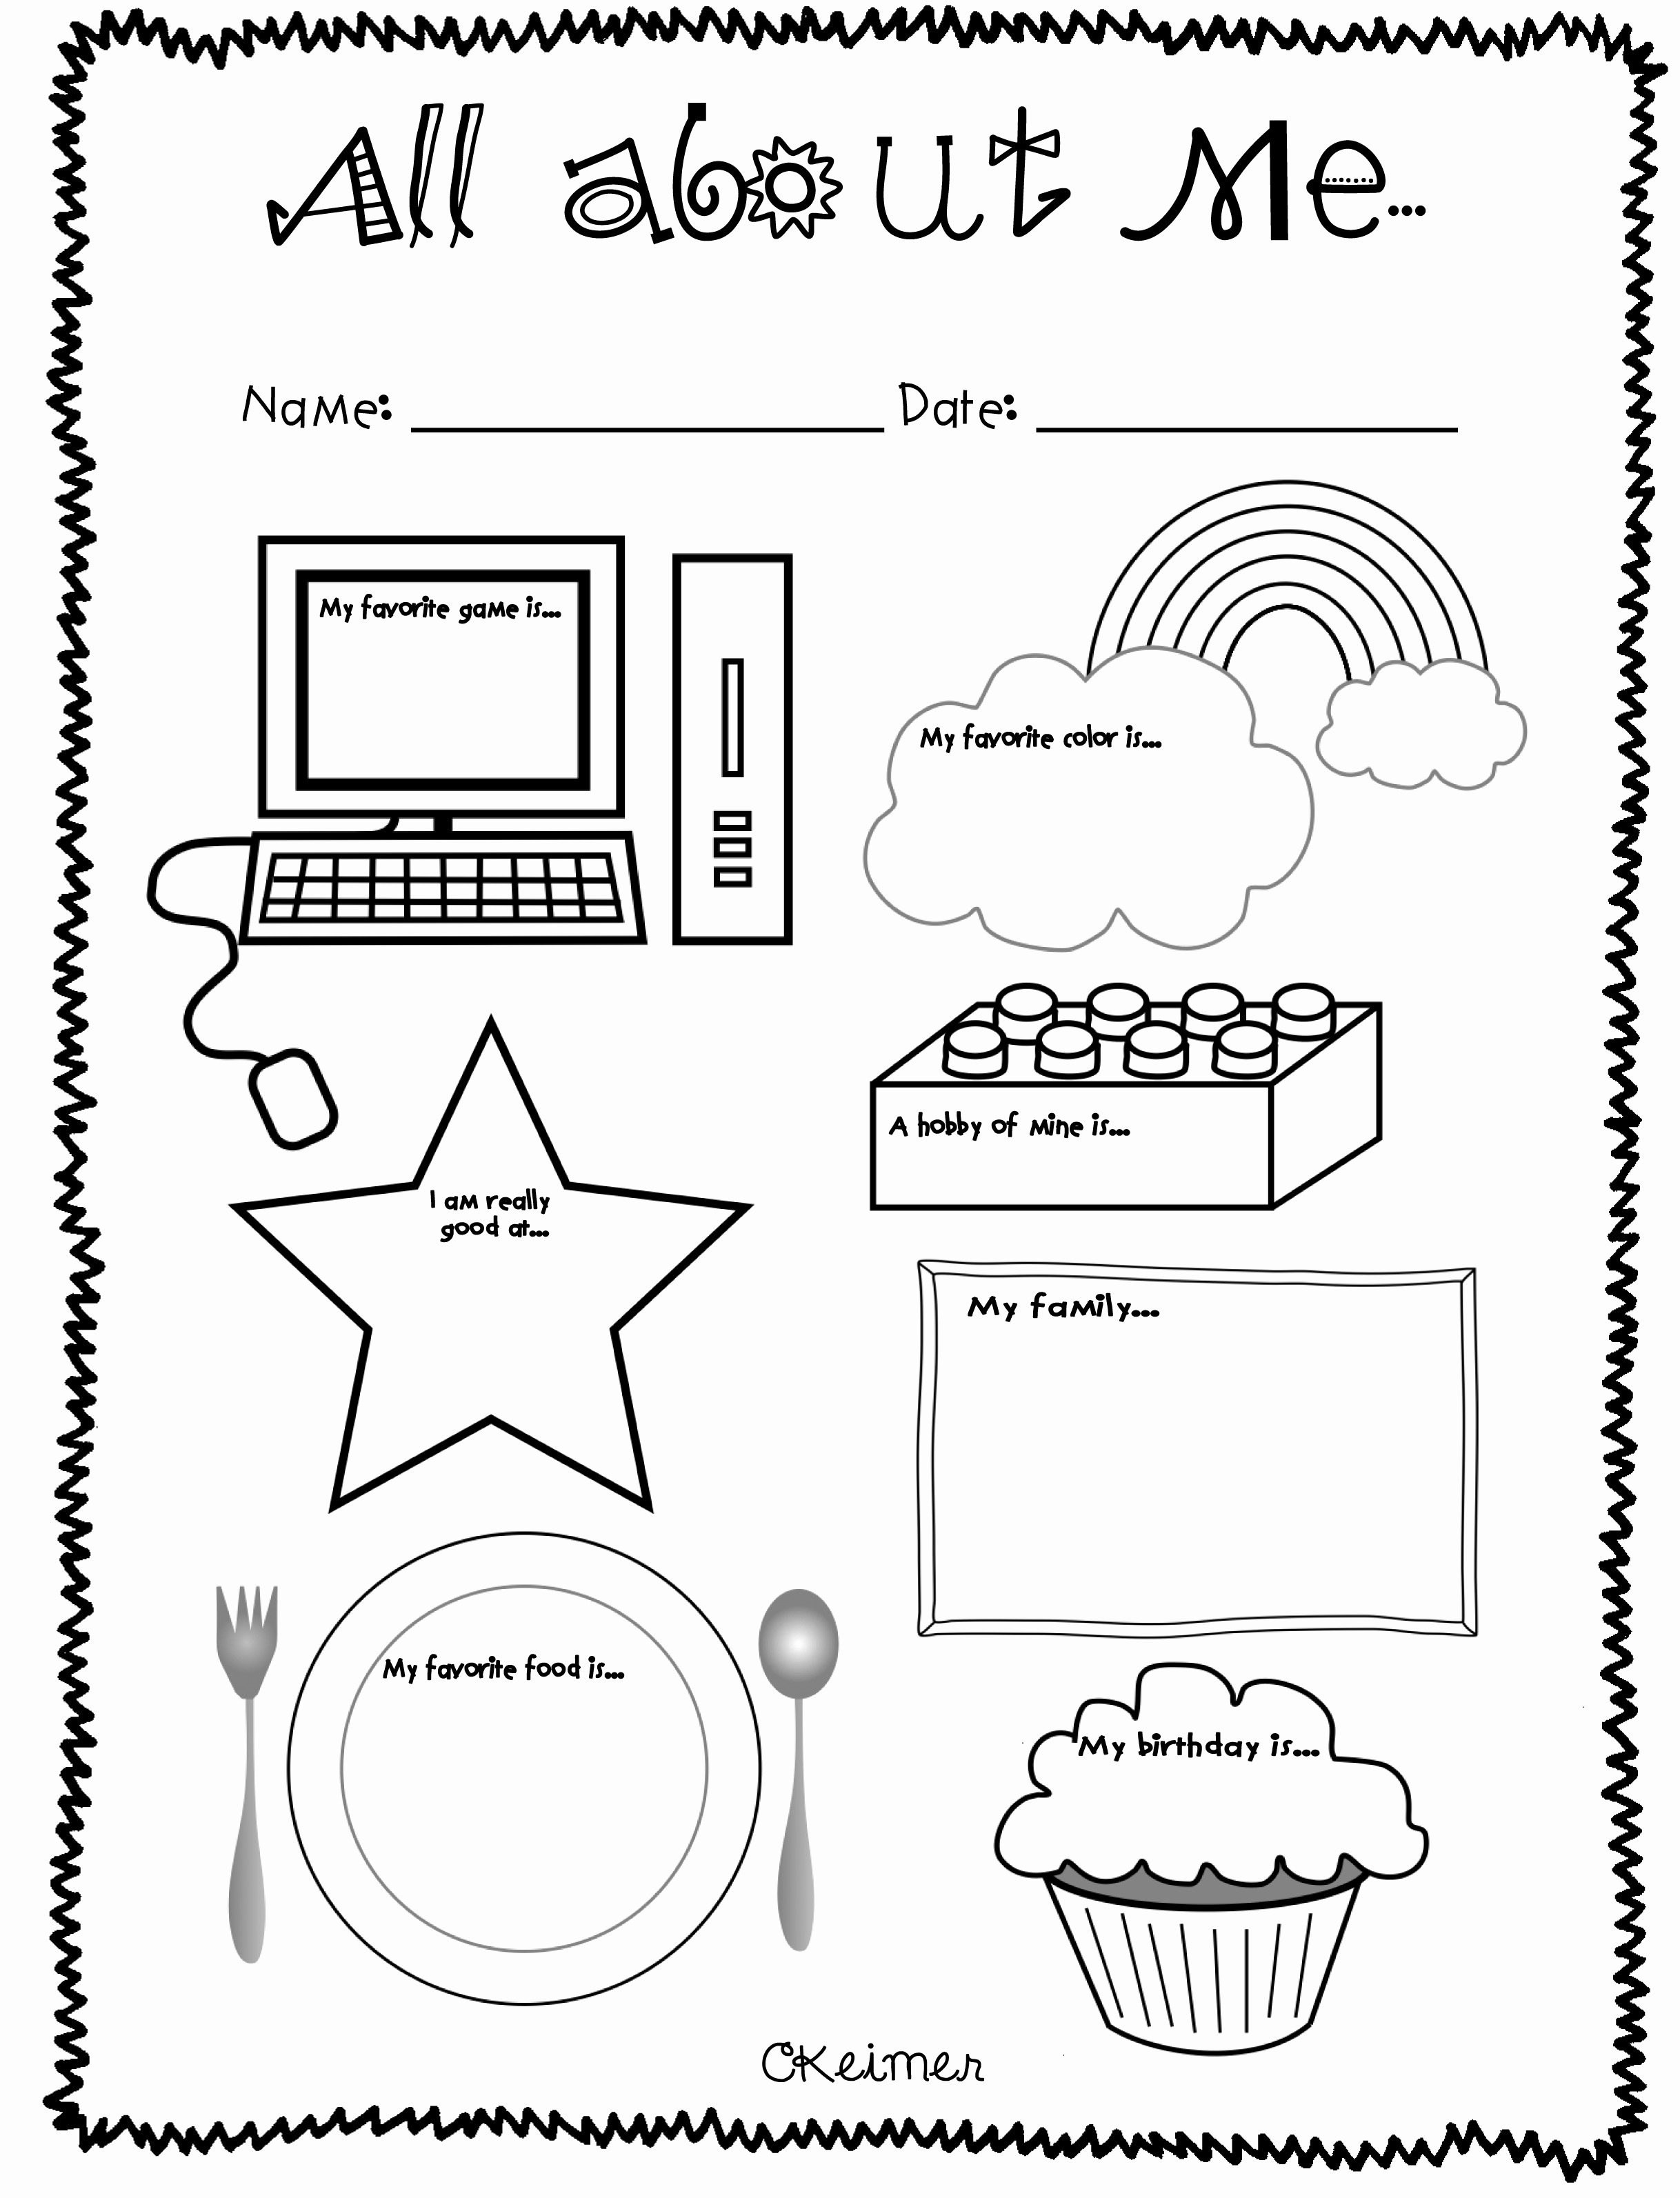 All About Me Worksheet Preschool Fresh All About Me Activities A Multiple Intelligences